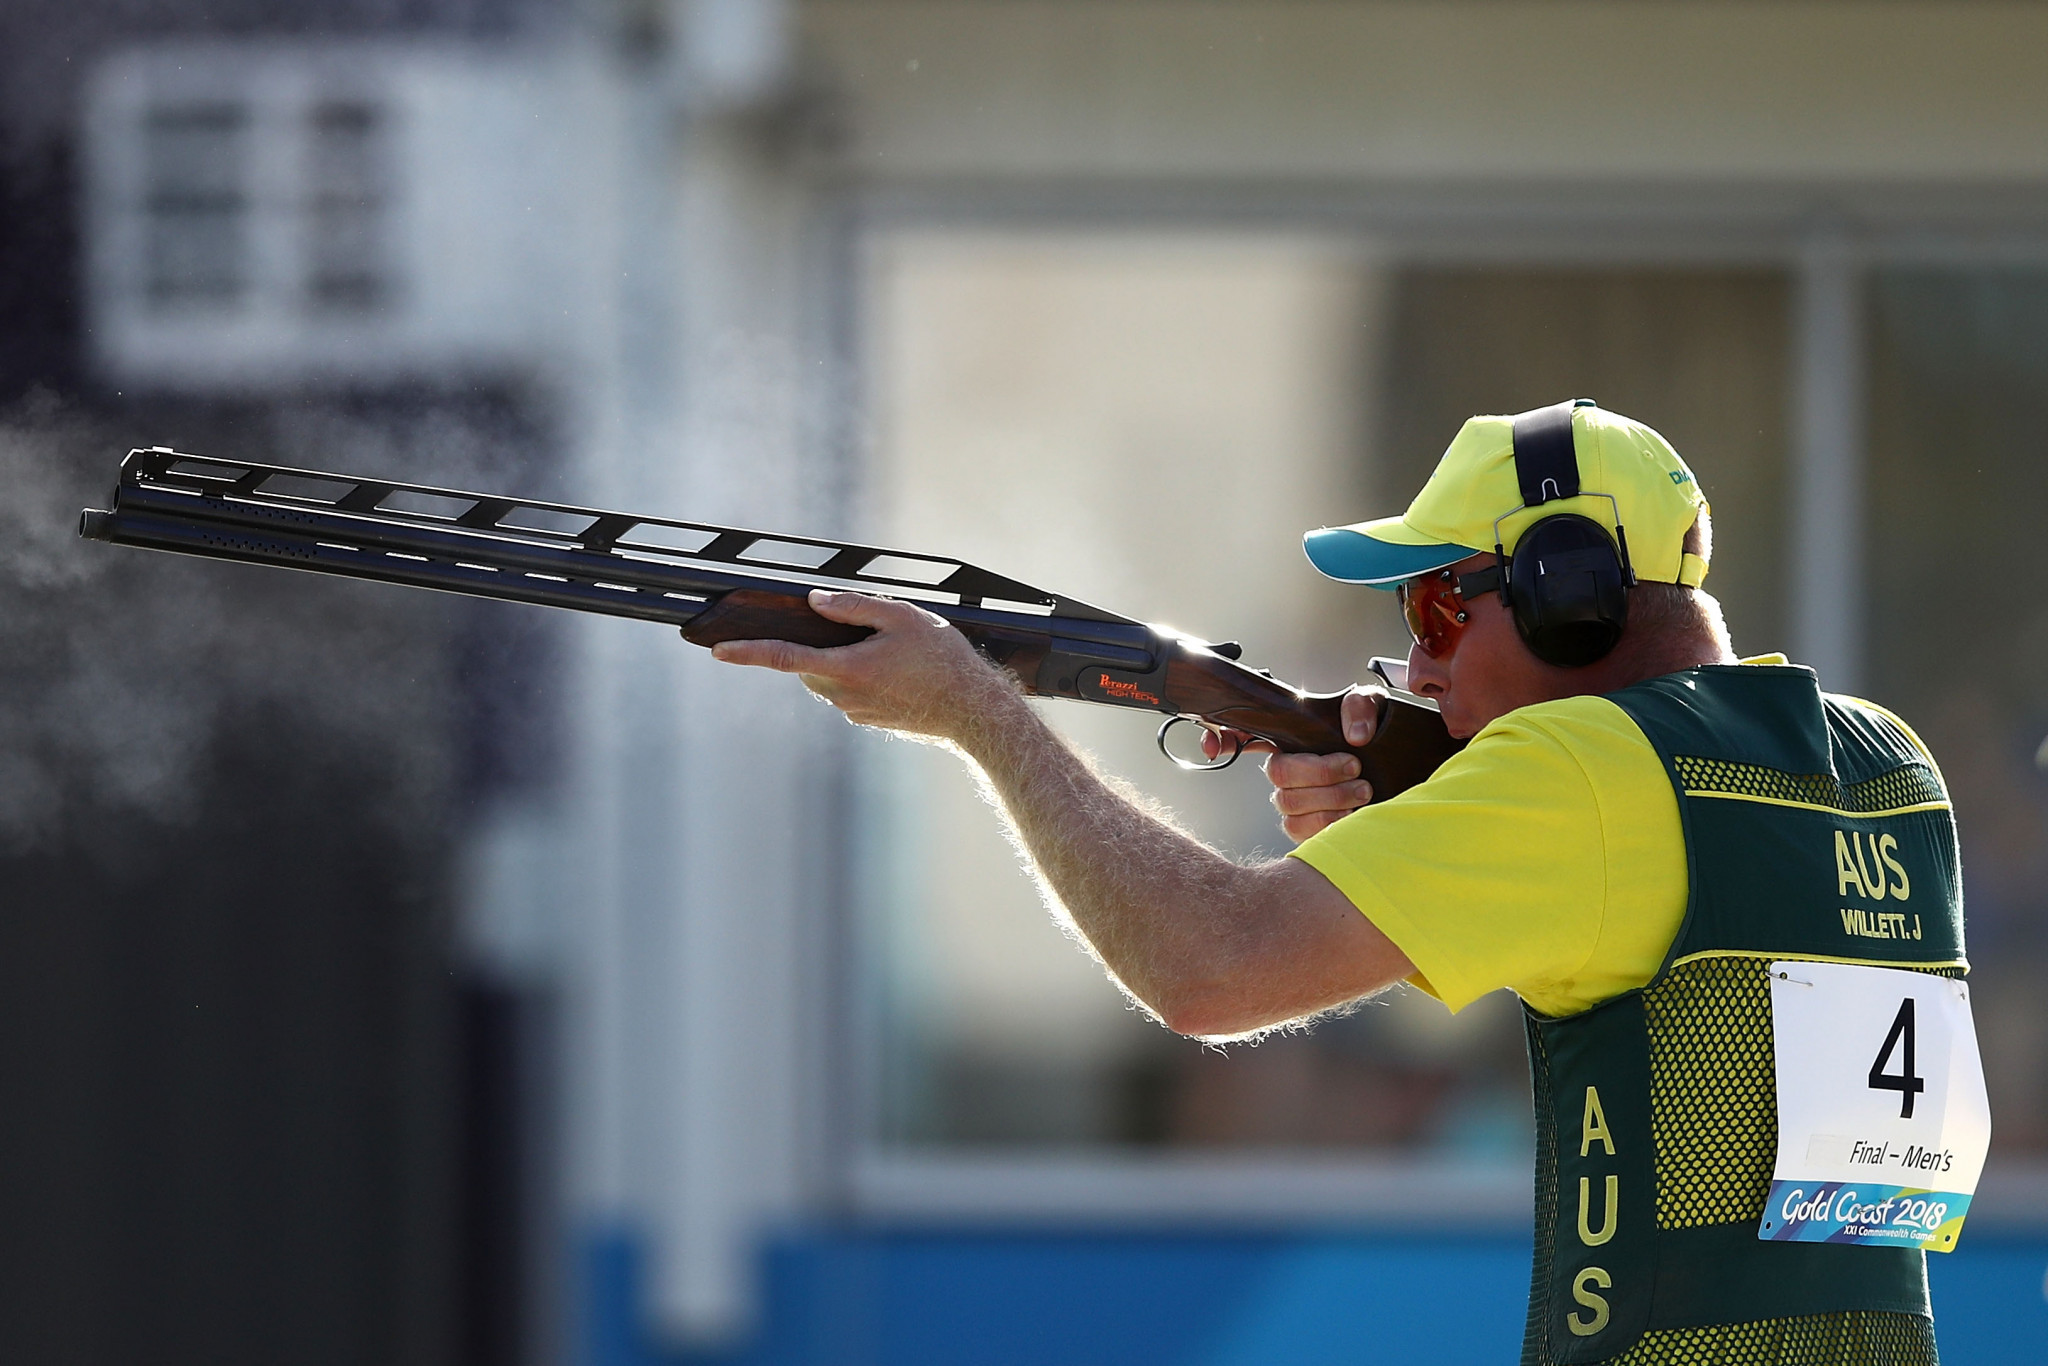 Willett collects second ISSF World Cup gold as Australia take mixed team trap title in Acapulco